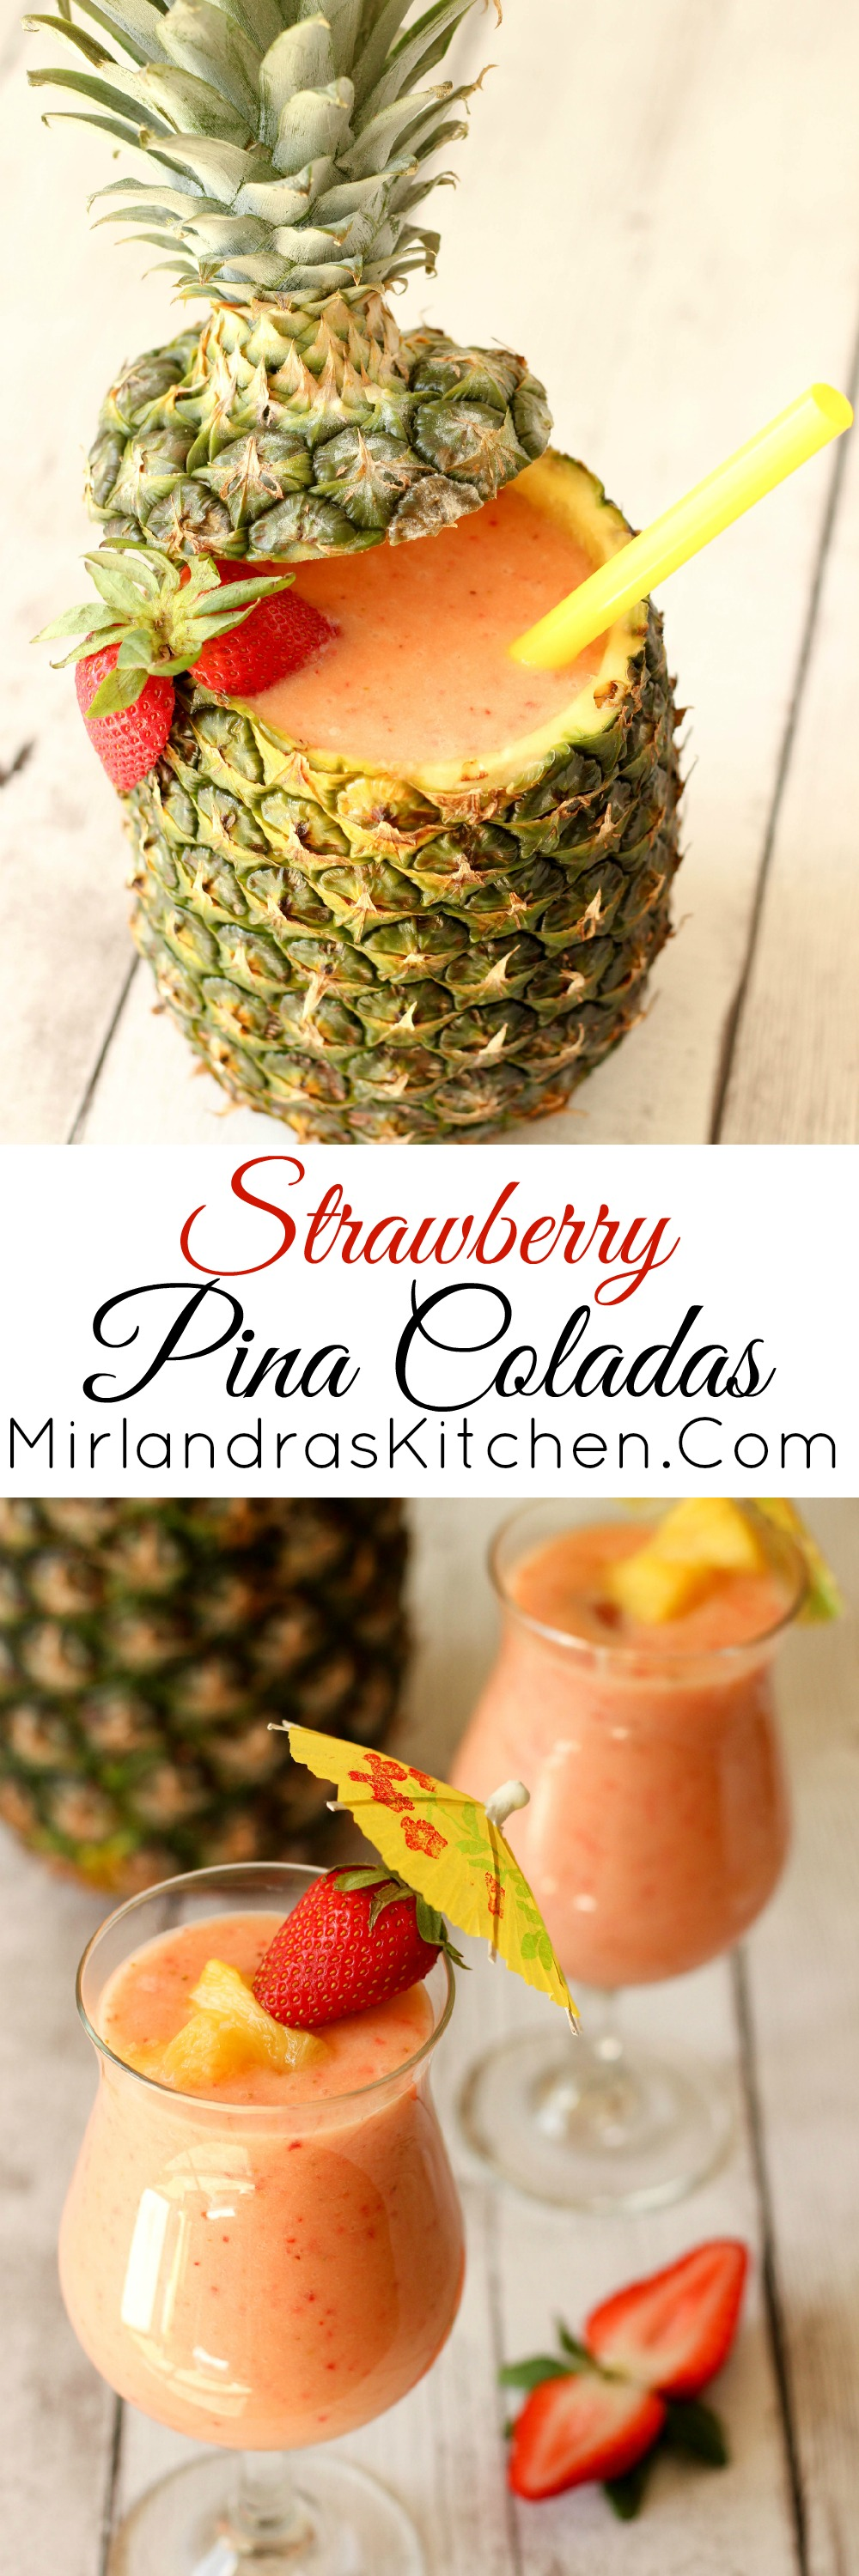 This summer try Strawberry Pina Coladas for a wonderful twist on a great classic. I have a few surprise ingredients that make this extra nice.